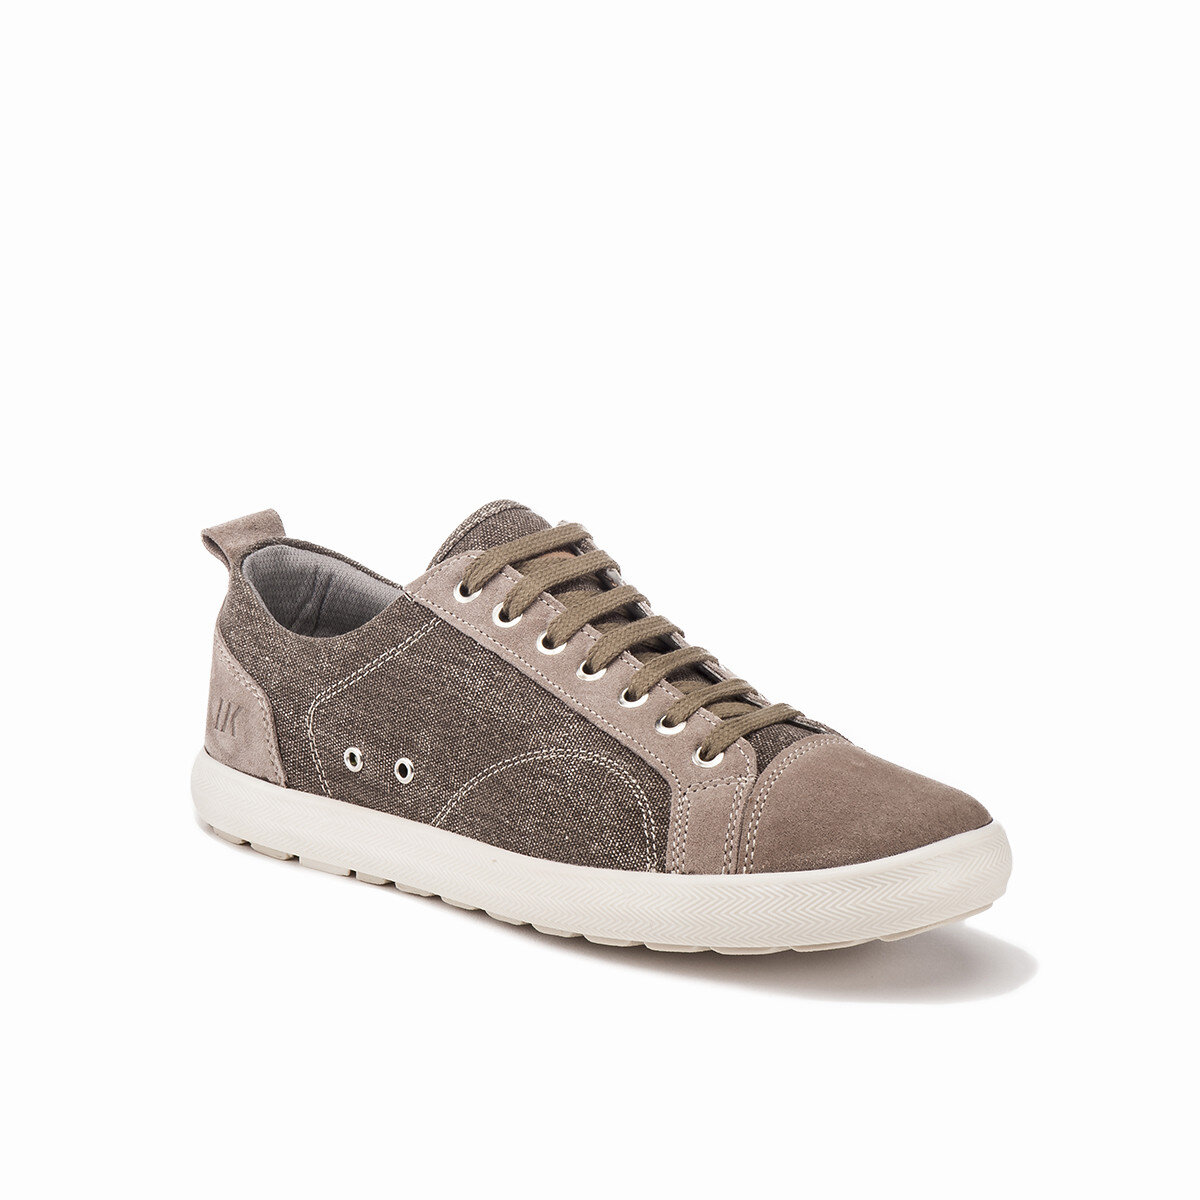 WOLF Sneakers Uomo